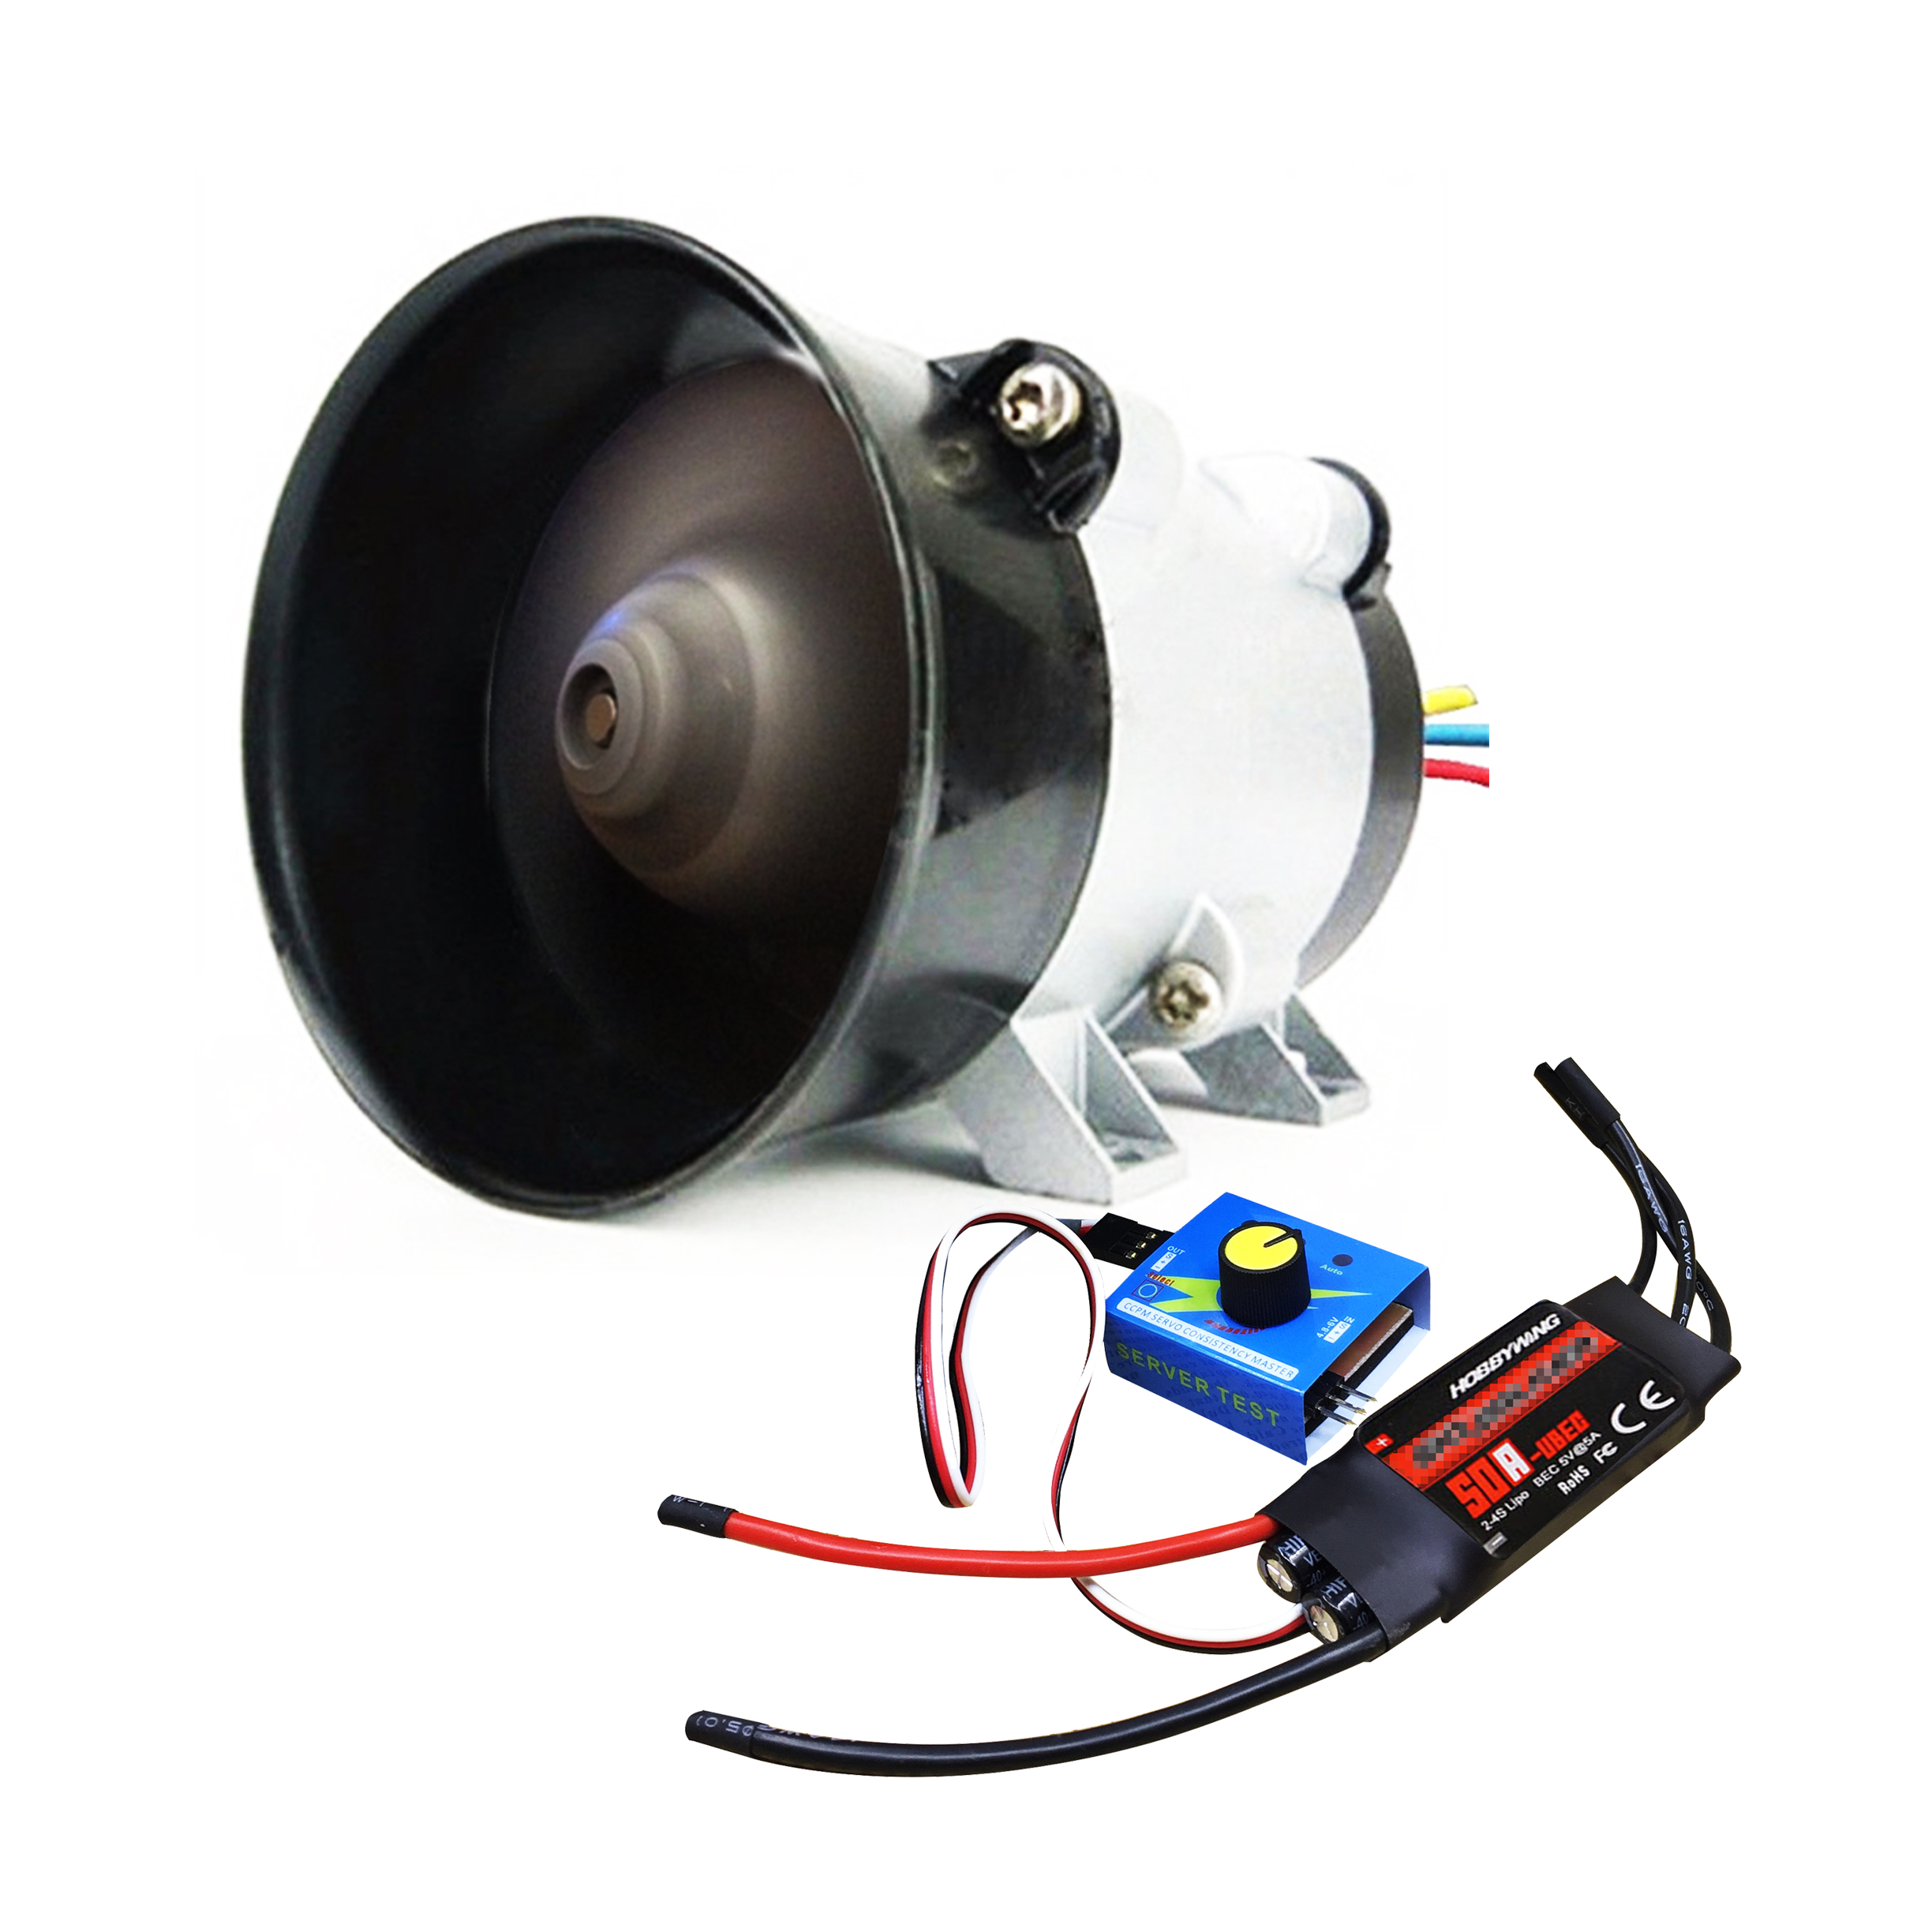 Car Electric Turbine Power Turbo Charger Brushless Hall-free Three-Phase Motor With DC12V 50A Supercharger Driver ControllerCar Electric Turbine Power Turbo Charger Brushless Hall-free Three-Phase Motor With DC12V 50A Supercharger Driver Controller